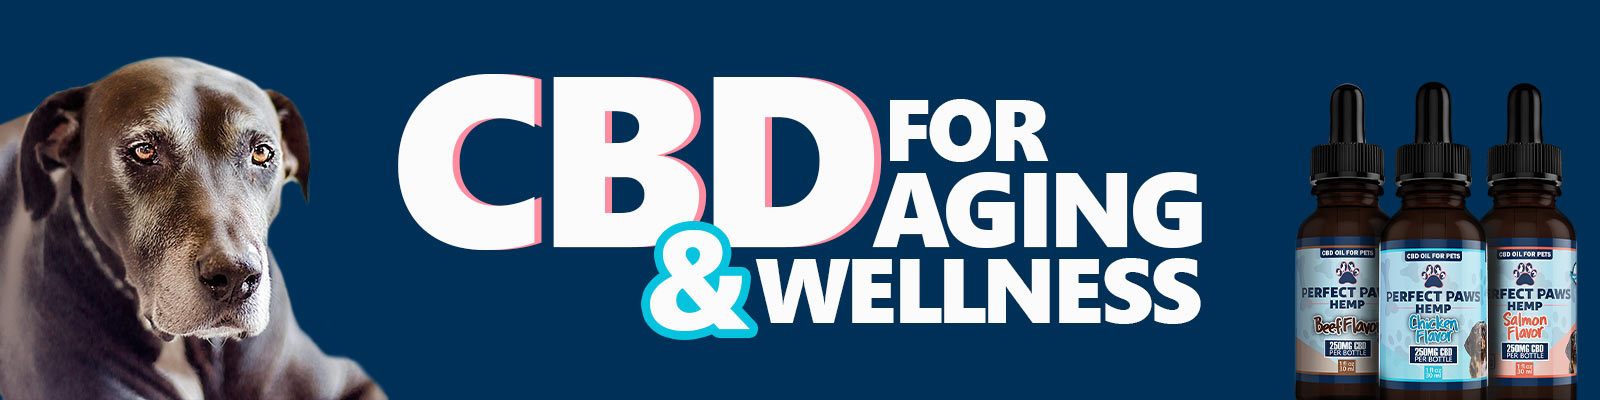 CBD for Aging Dogs Wellness